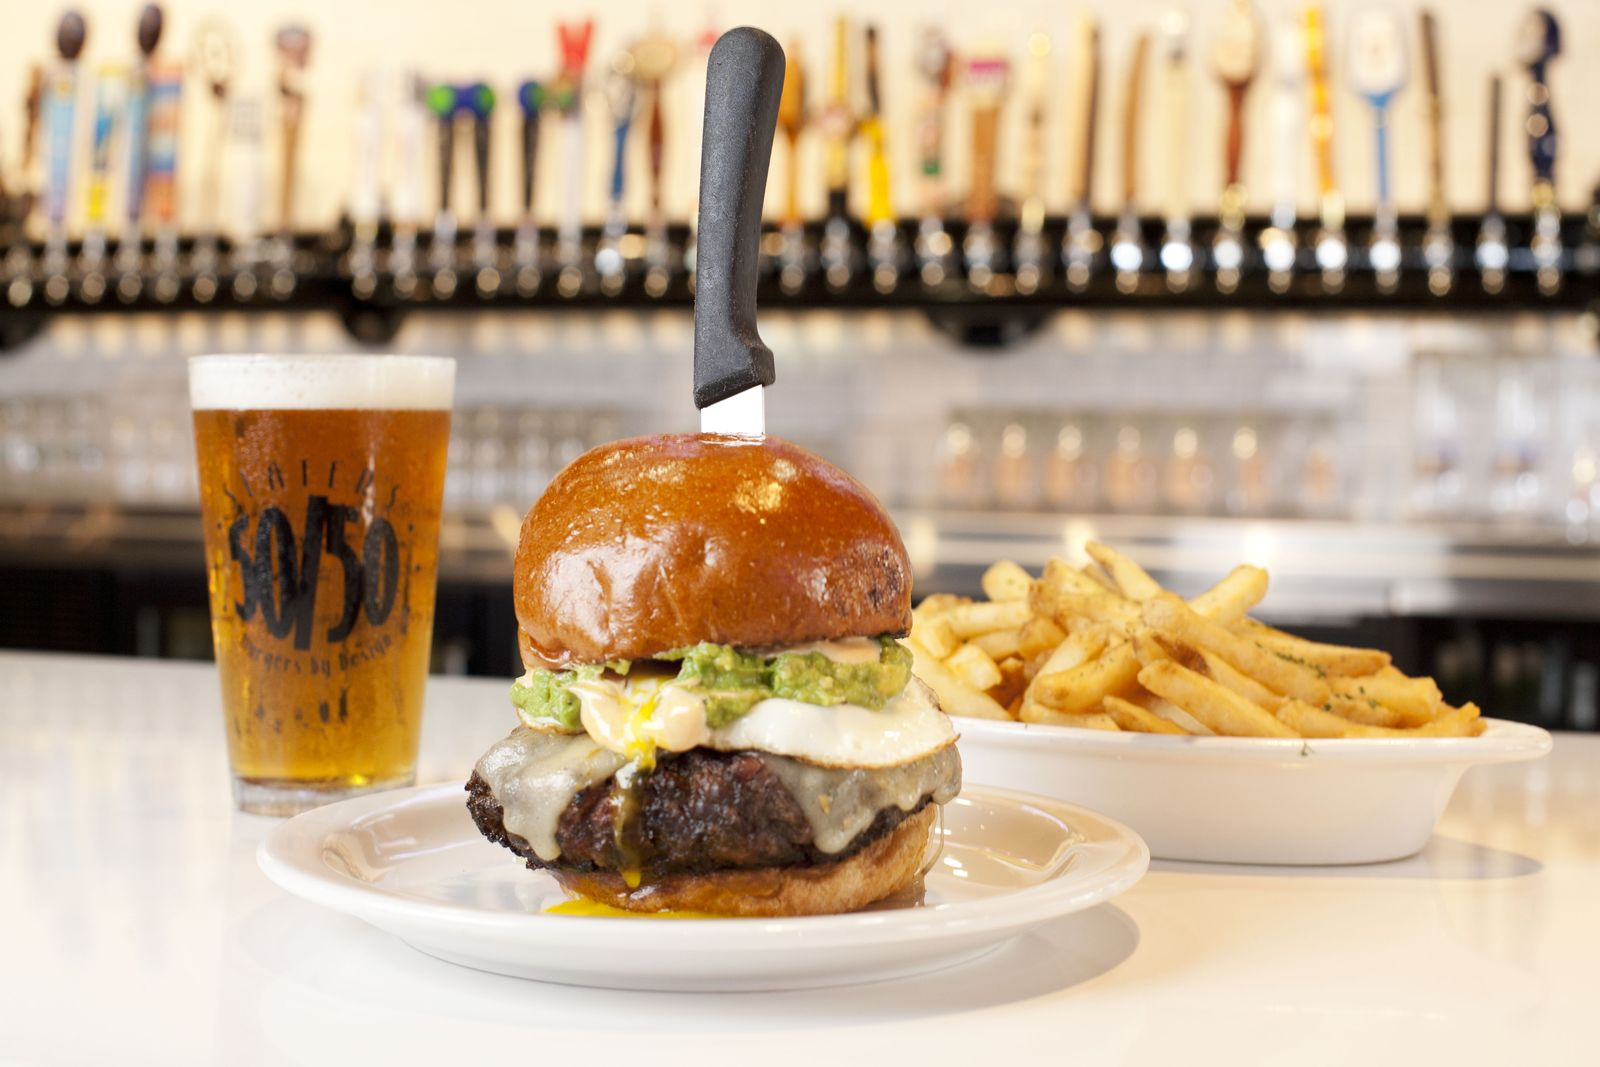 Slater's 50/50, the nationally recognized burger concept known for its ambitiously creative menu, has announced that its first Santa Clarita location will open at Westfield Valencia Town Center on Thursday, June 18.